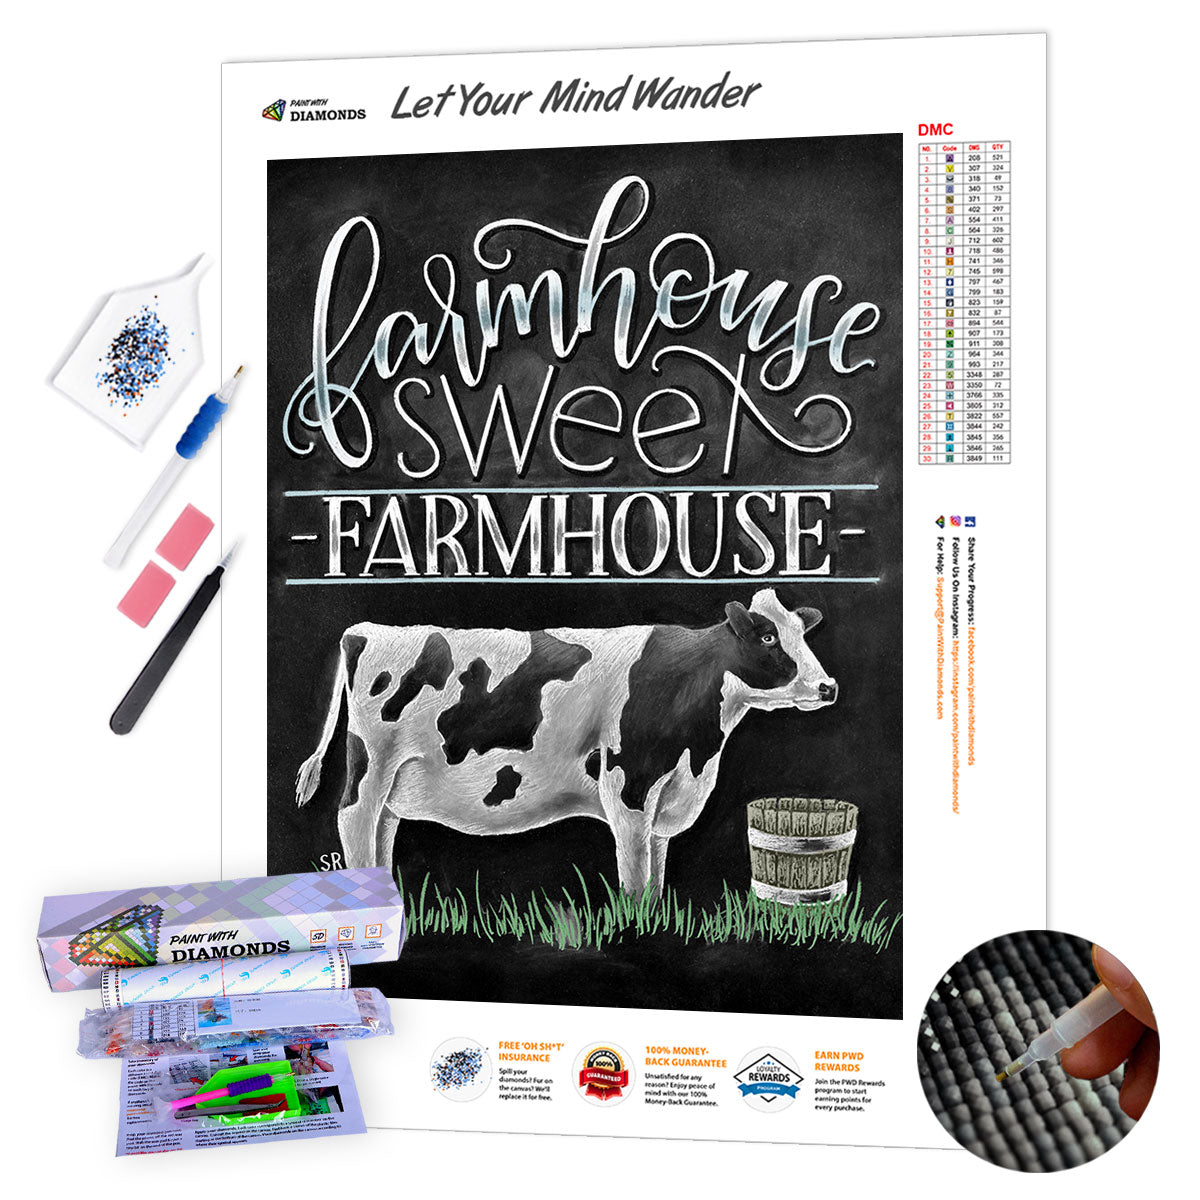 Farmhouse Sweet Farmhouse